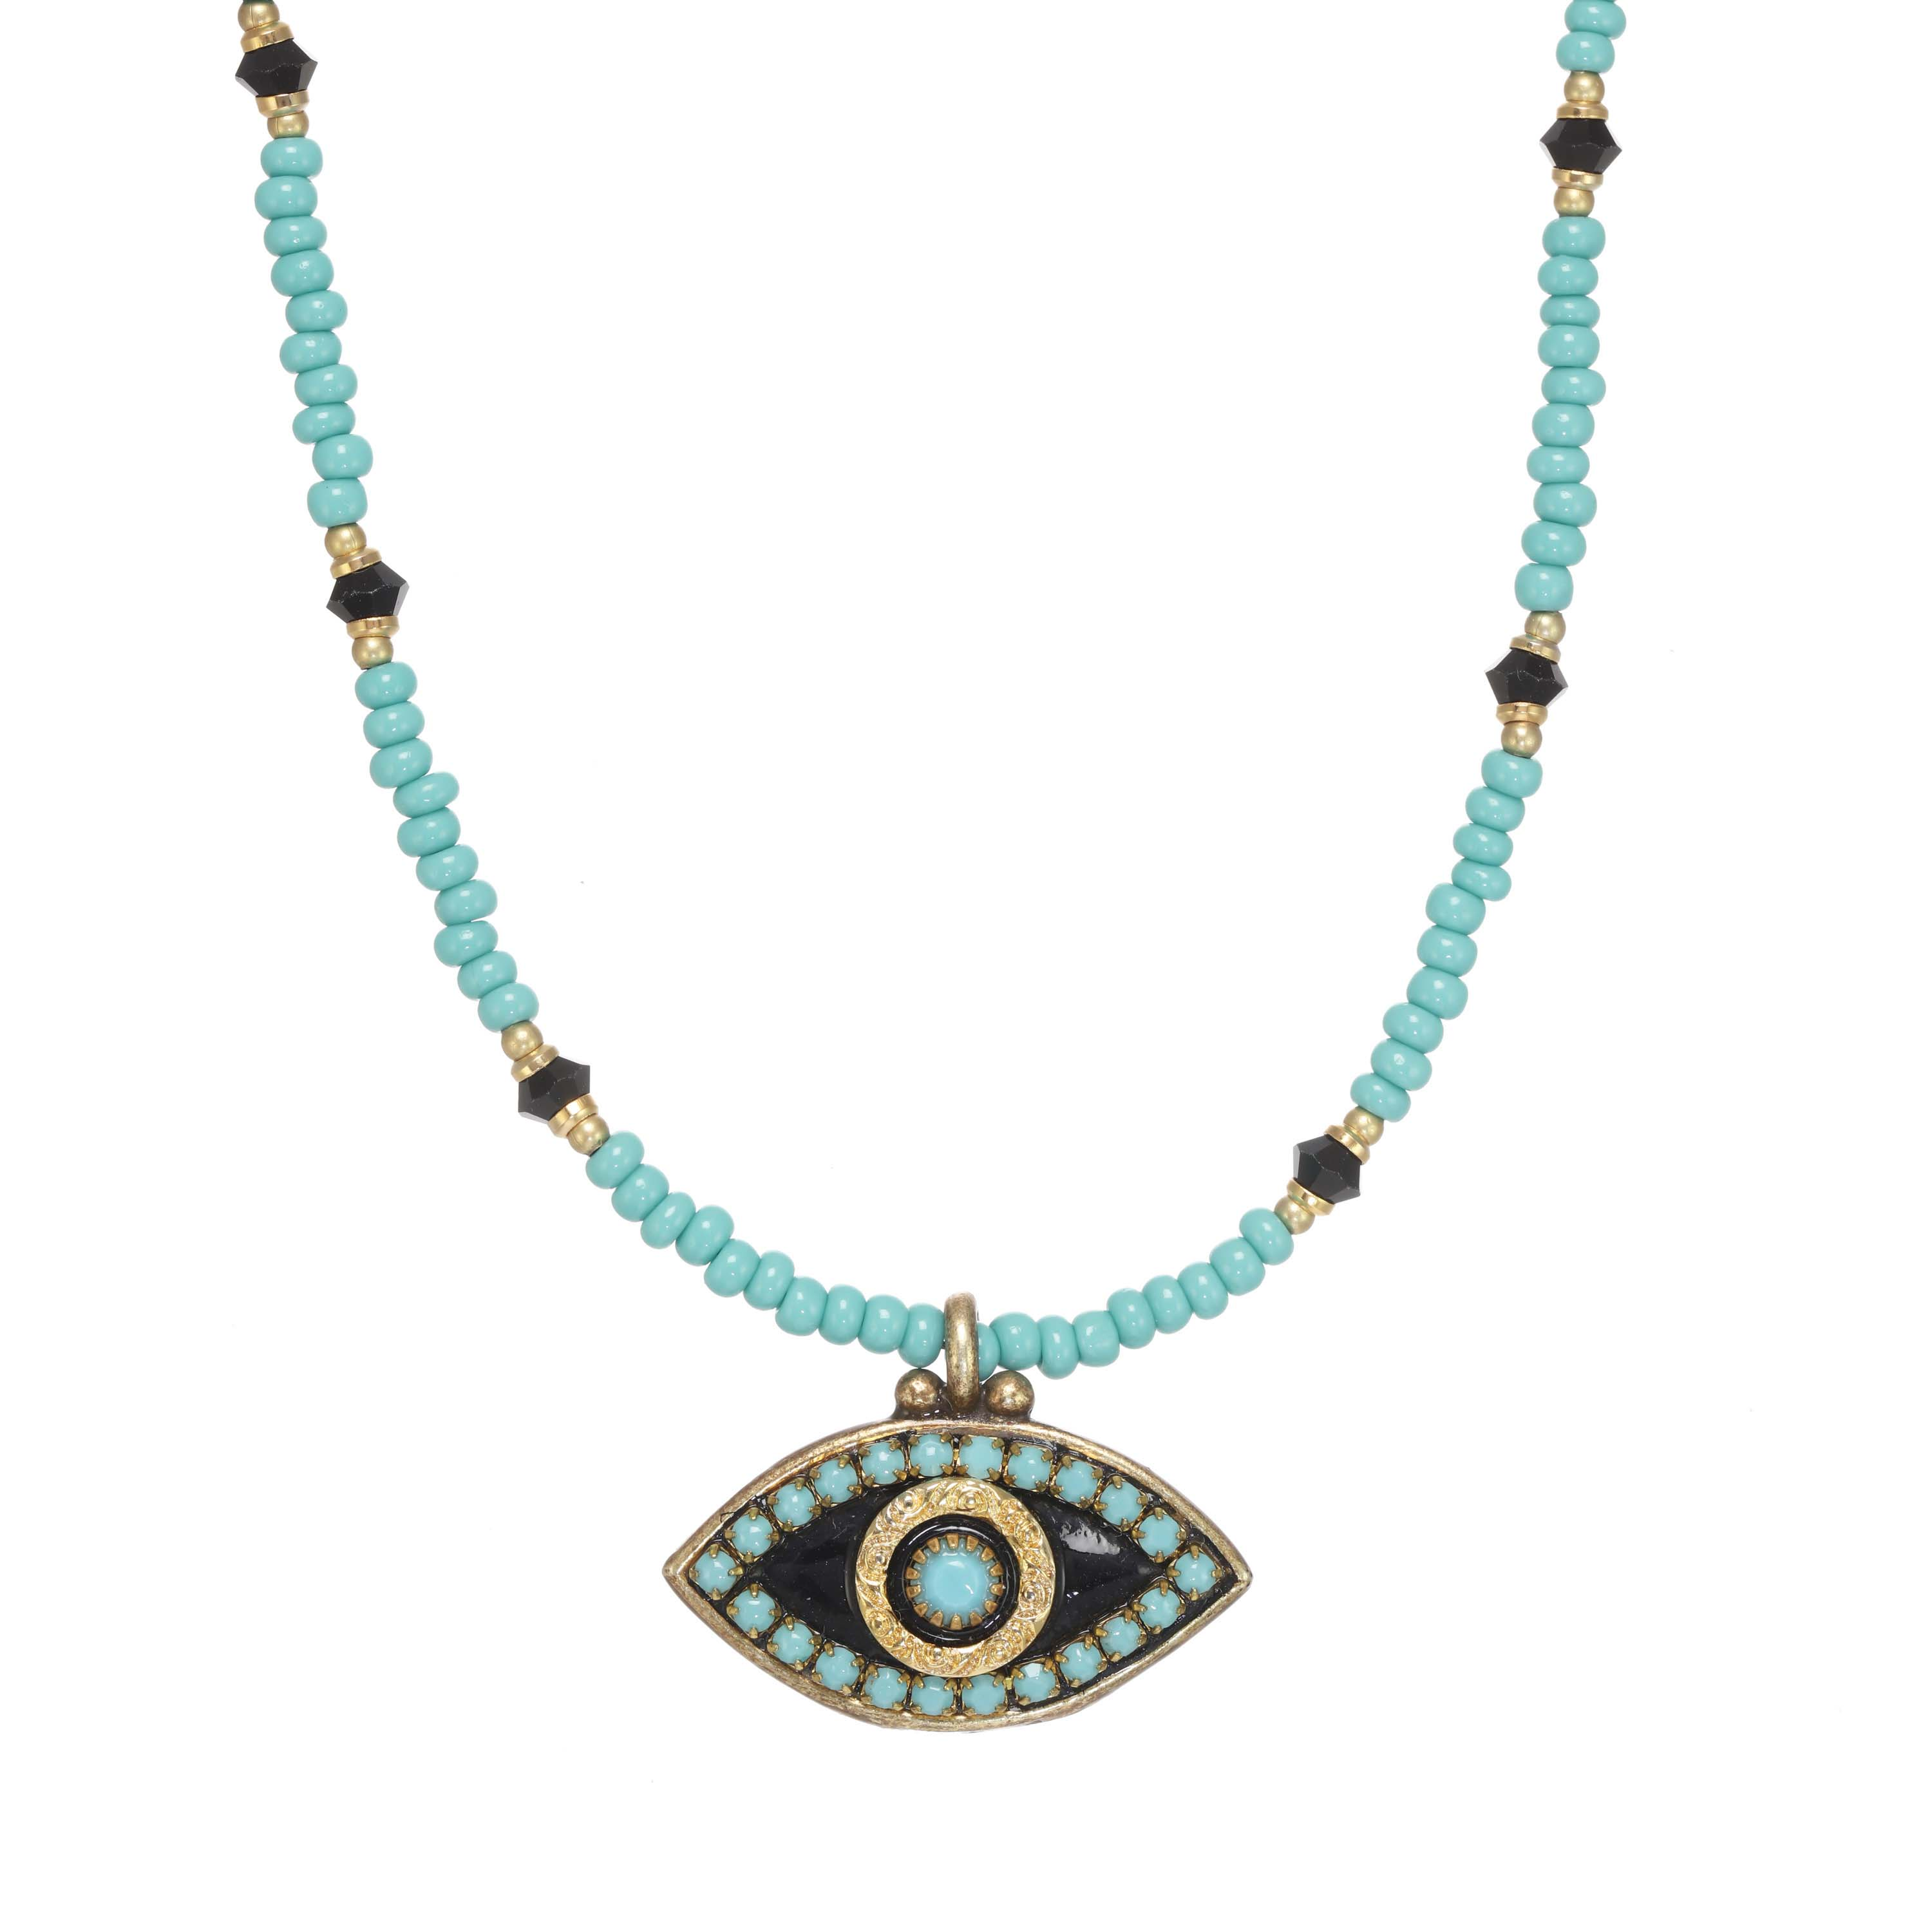 Turquoise and Black Evil Eye Necklace